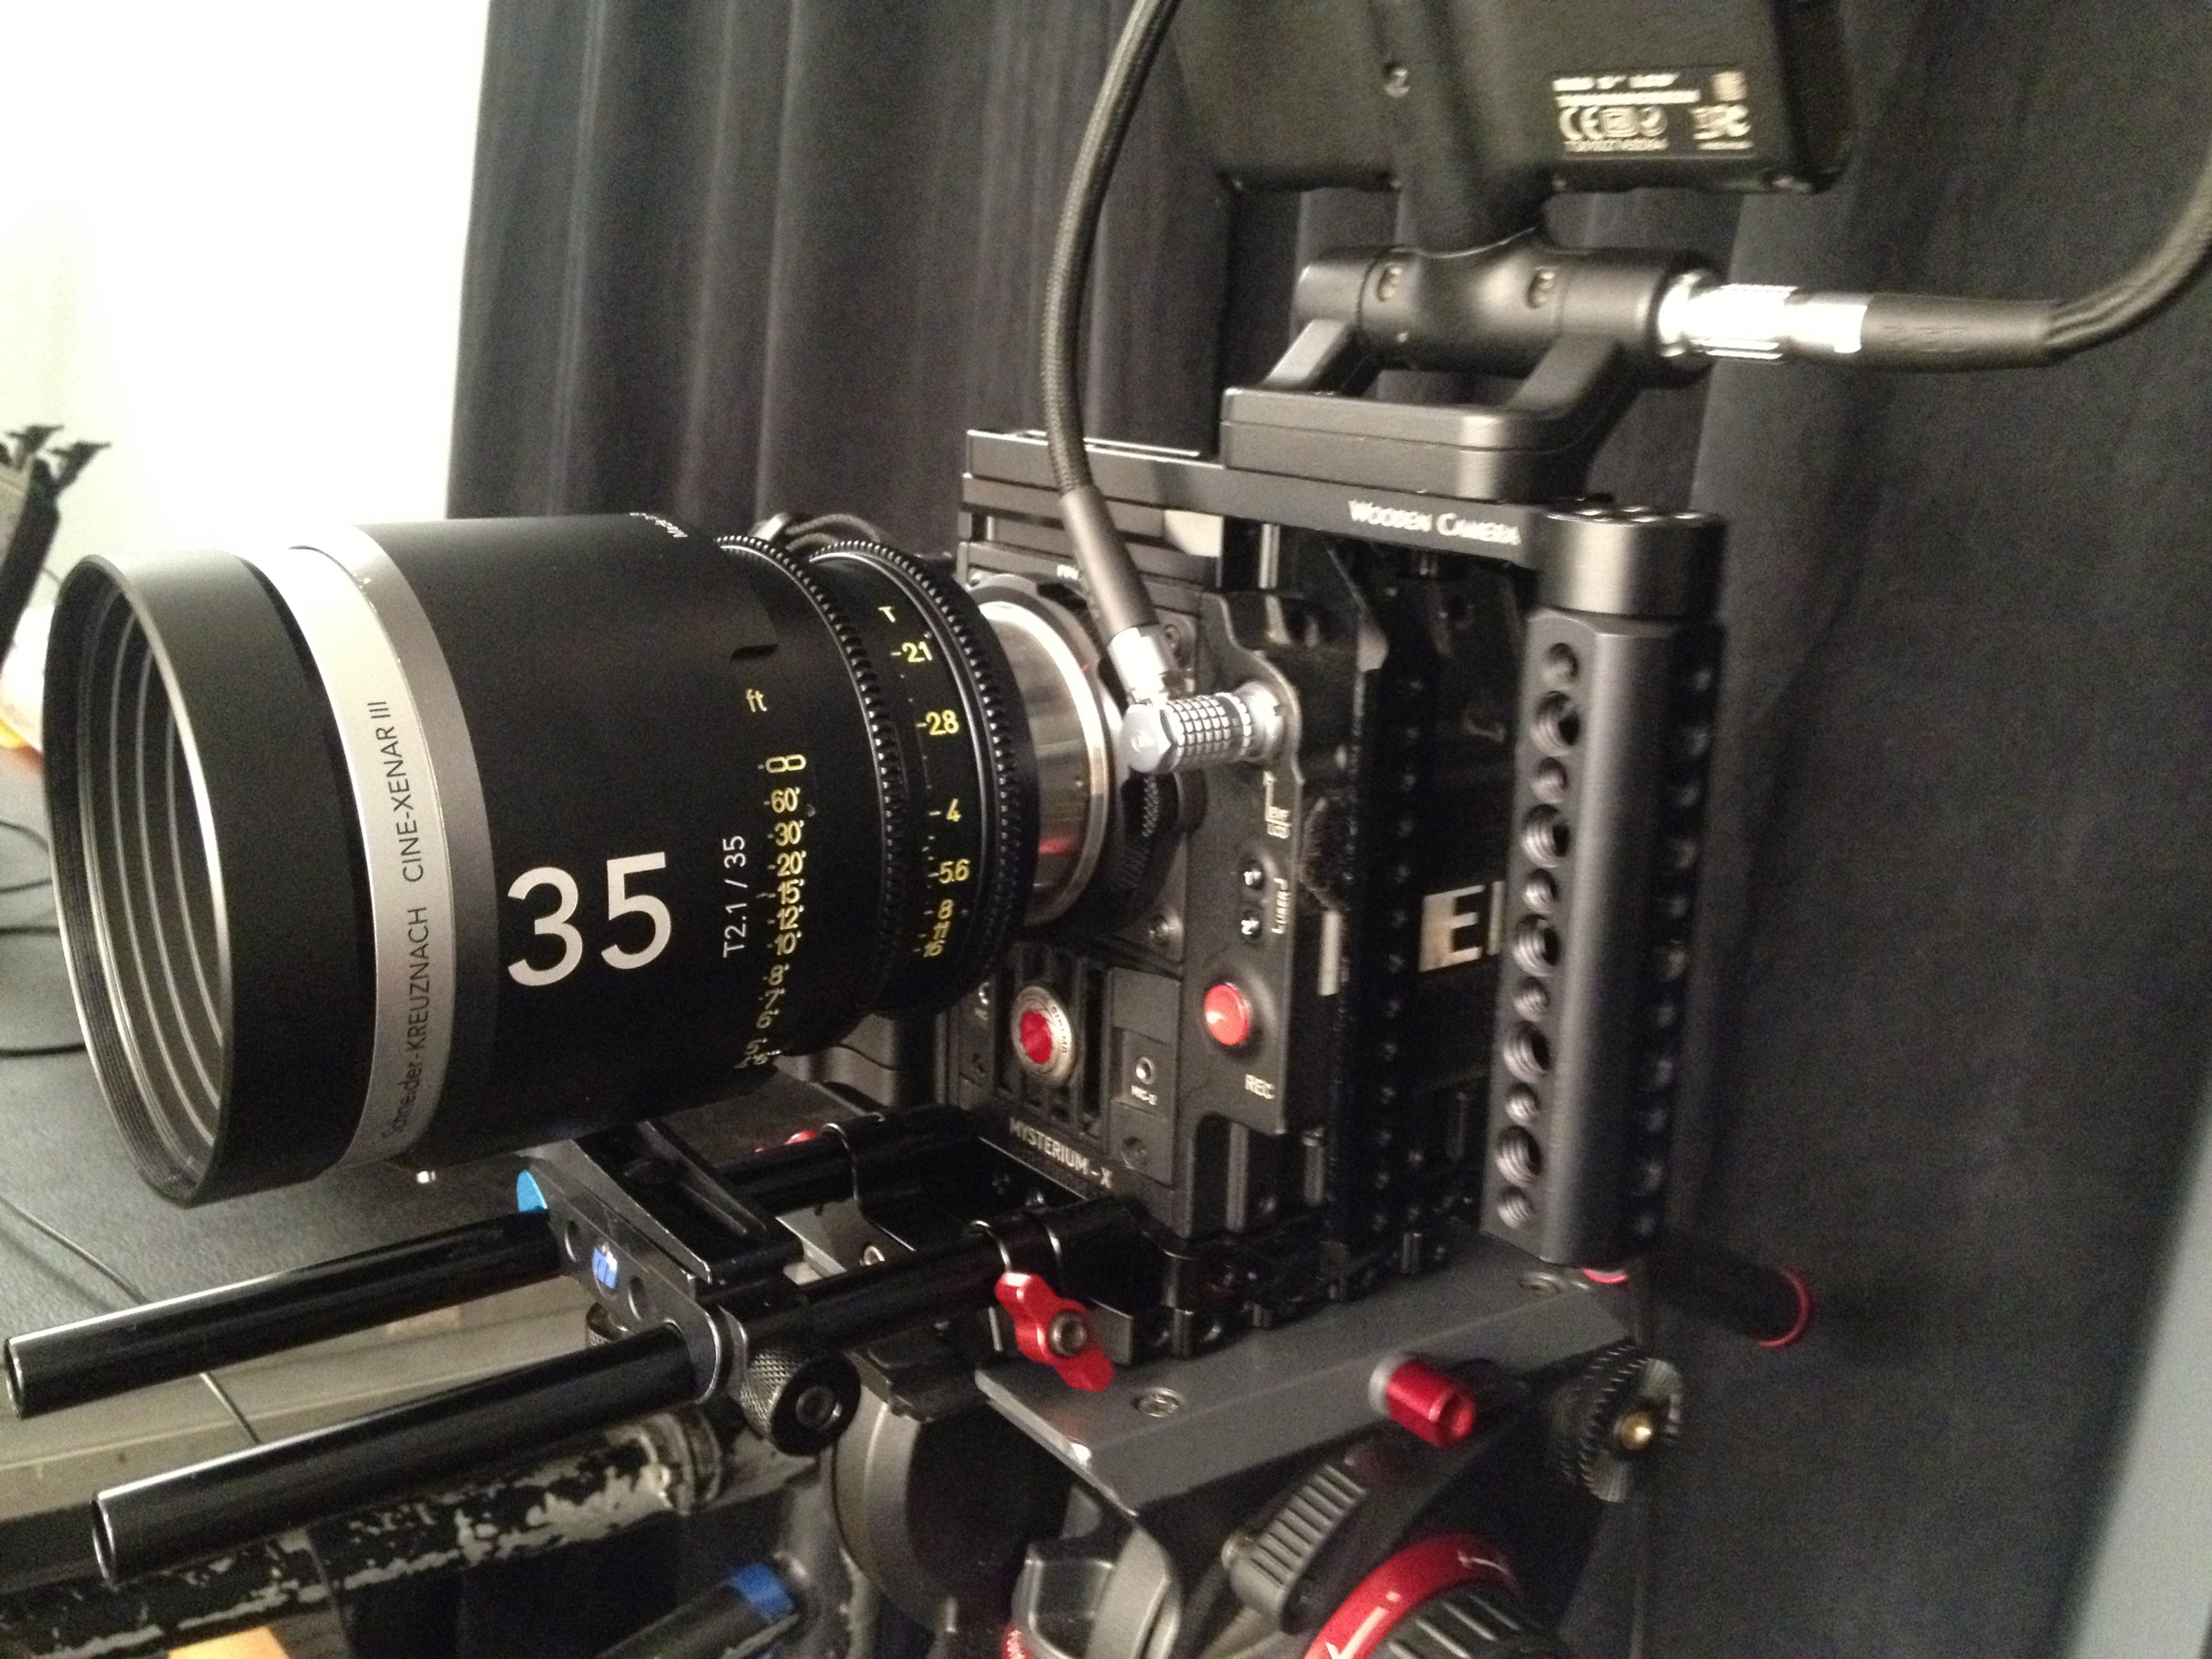 Got to use some sweet cinema primes.